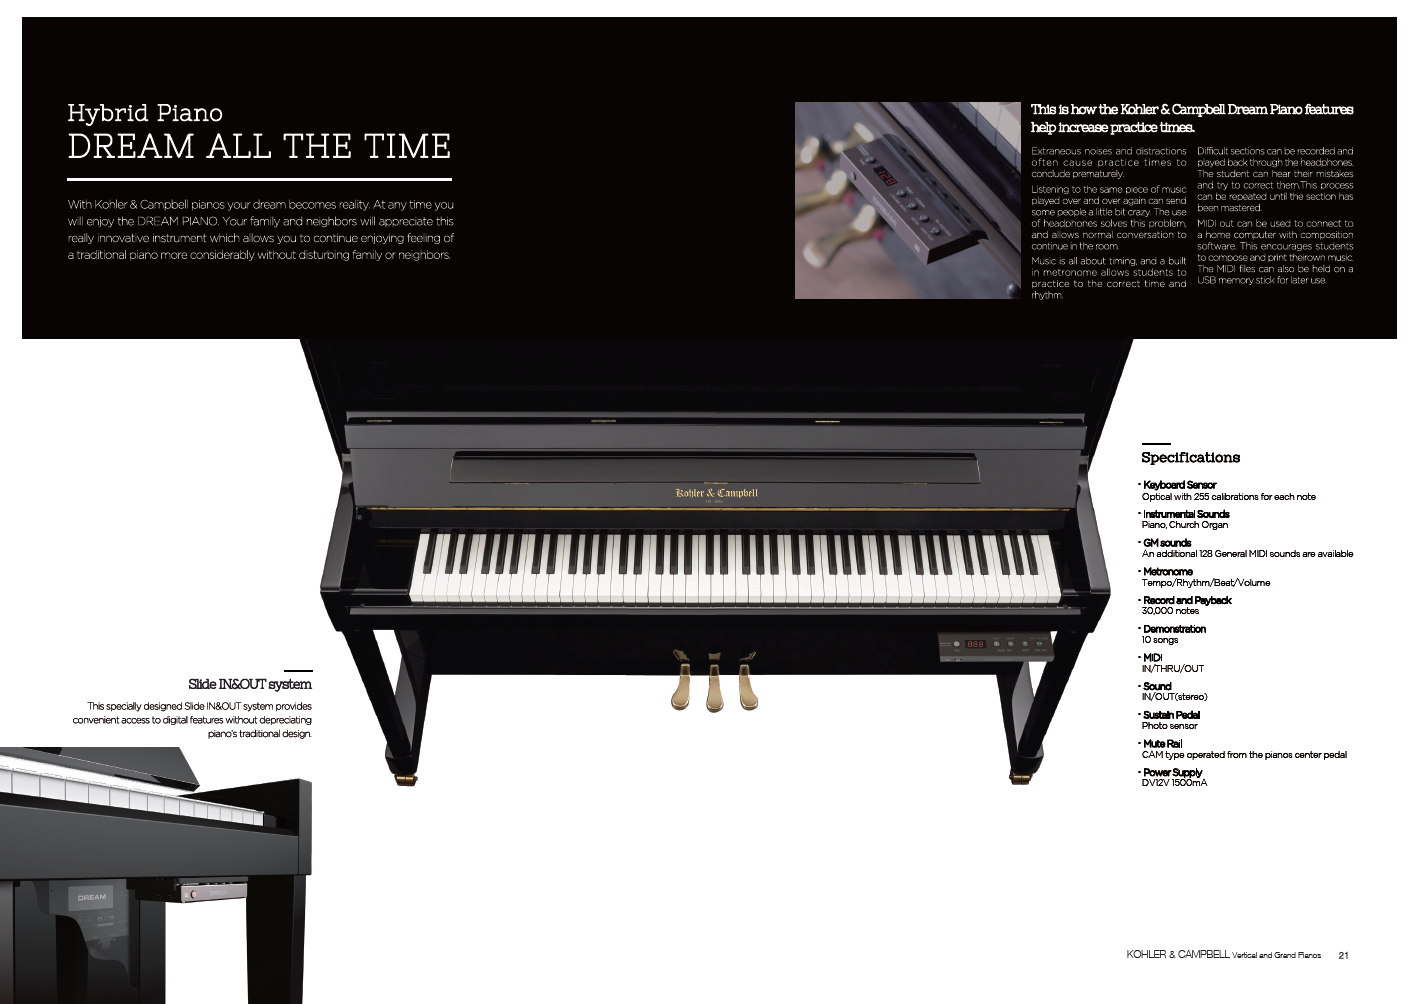 Kohler & Campbell Pianos Dream Silent Playing System